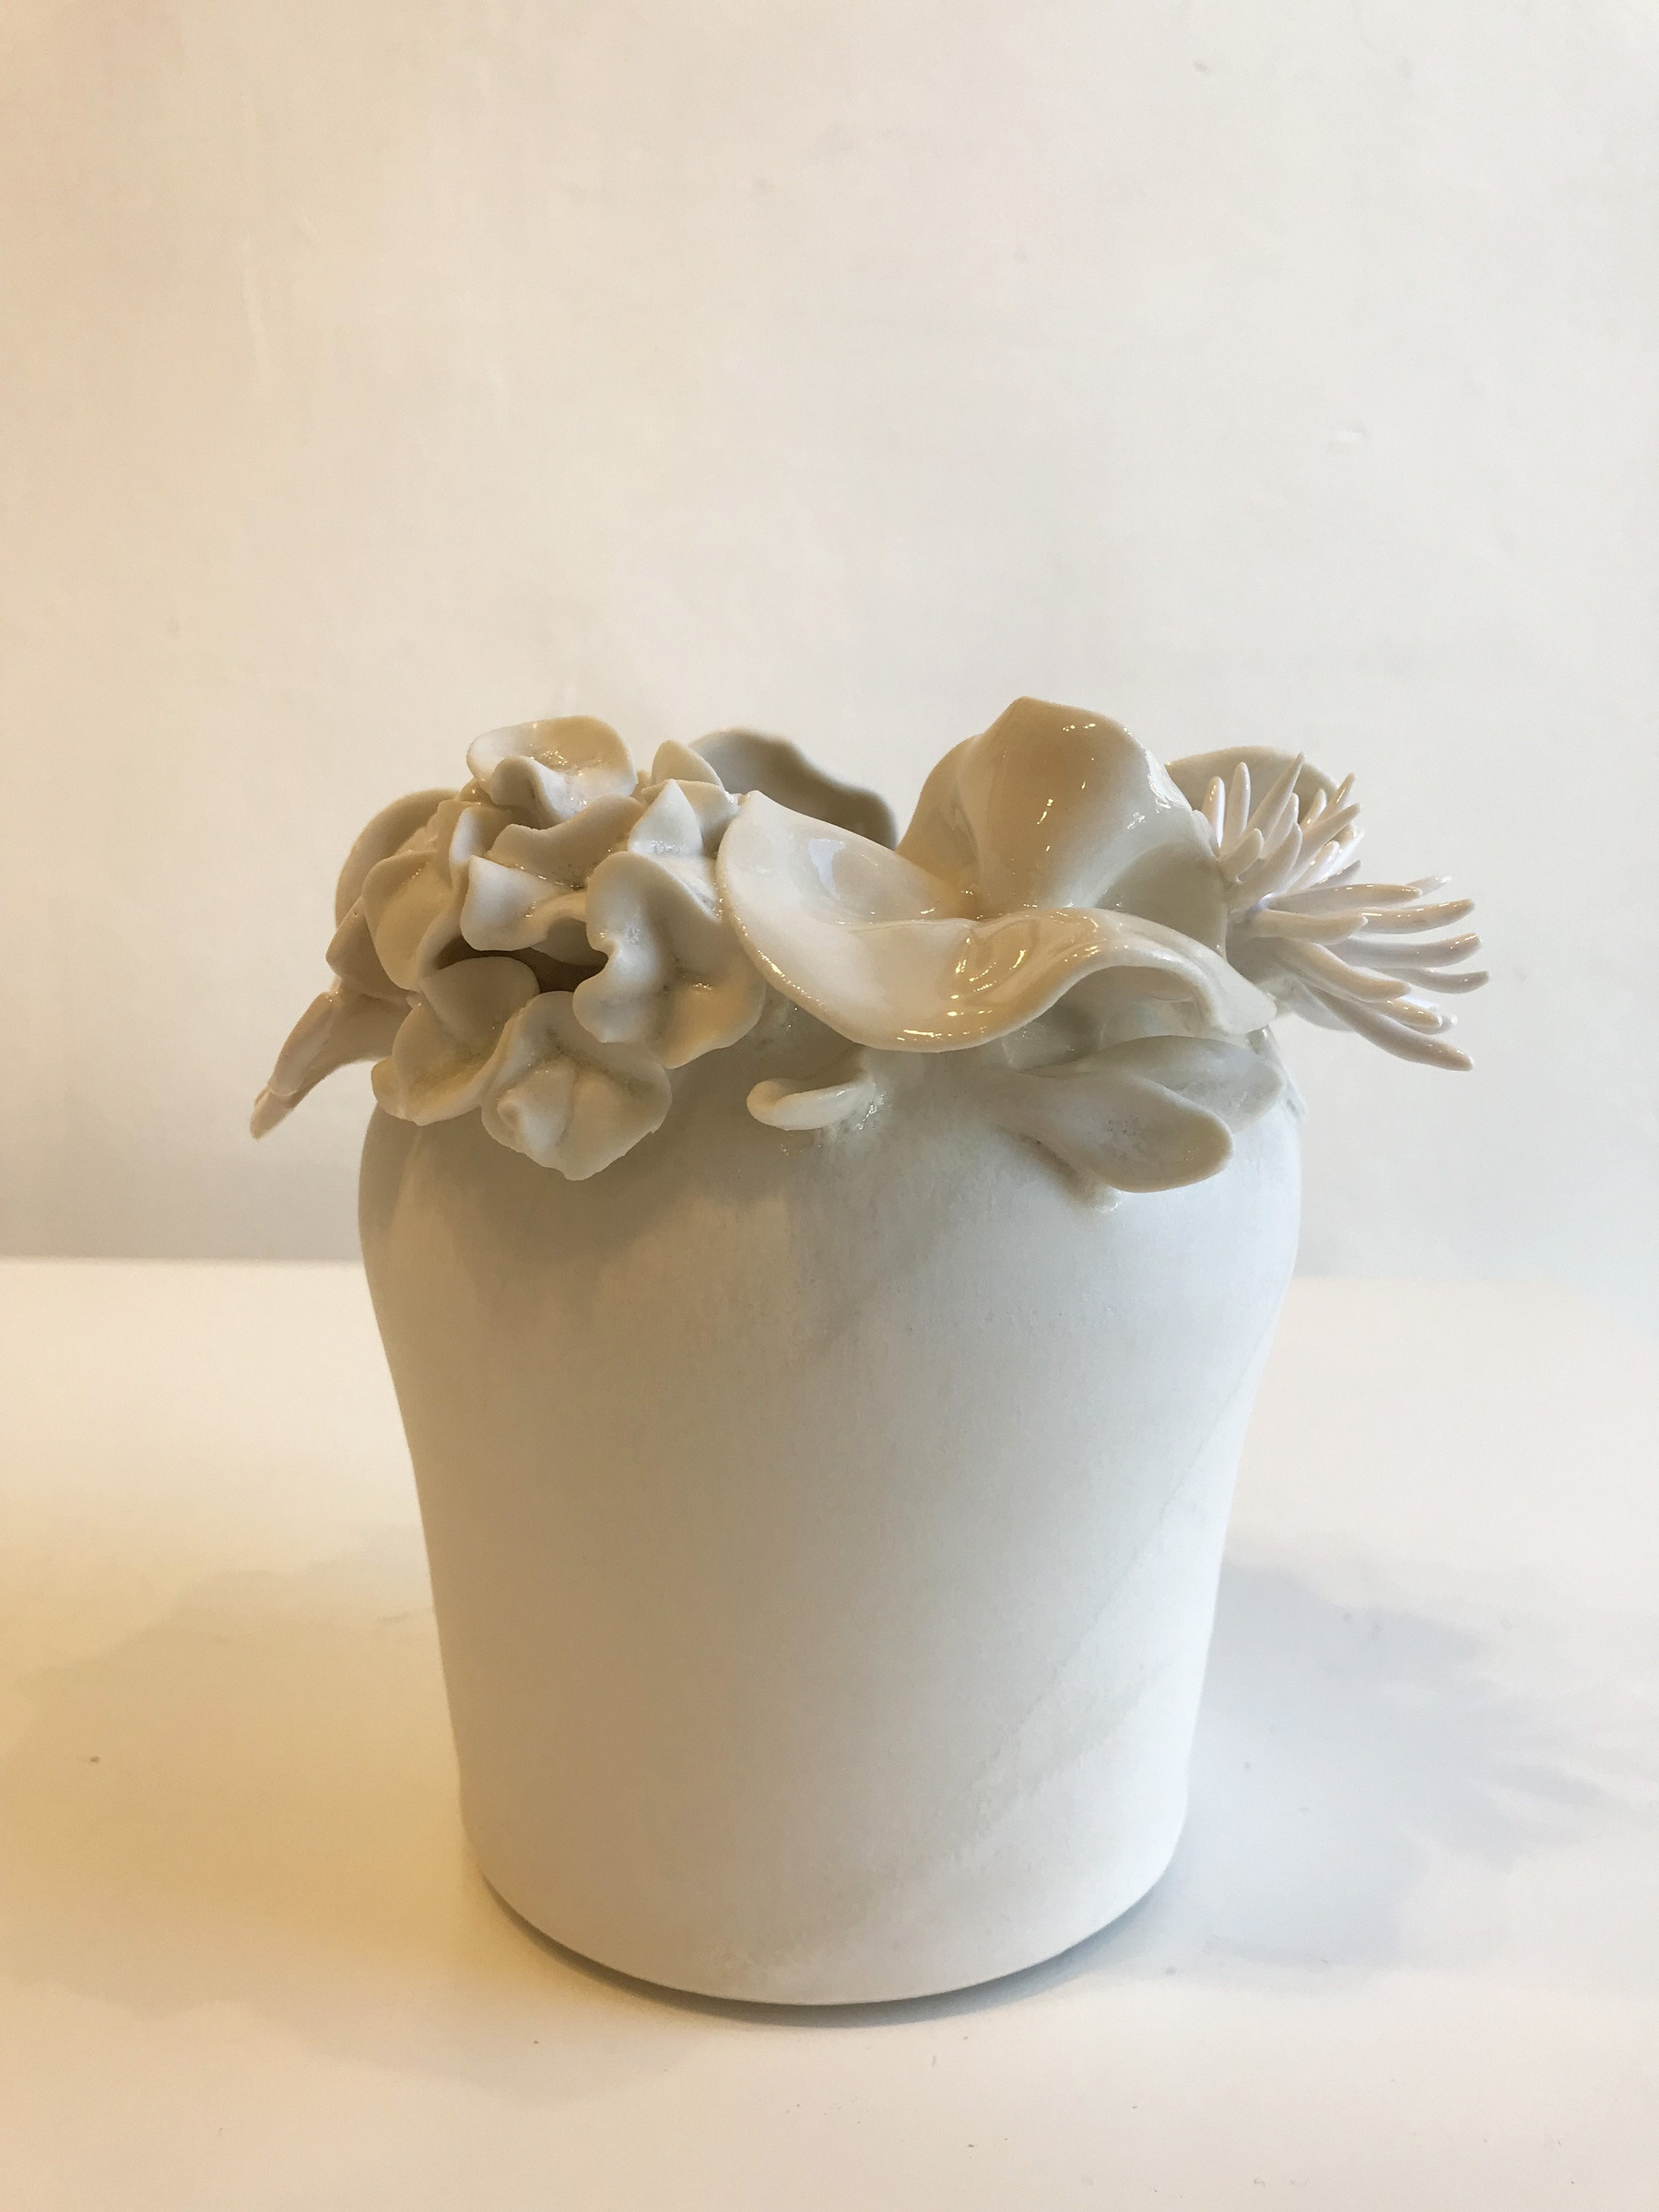 flower vase store of emma jagare small flower vase various flowers and coral sarah regarding small flower vase various flowers and coral